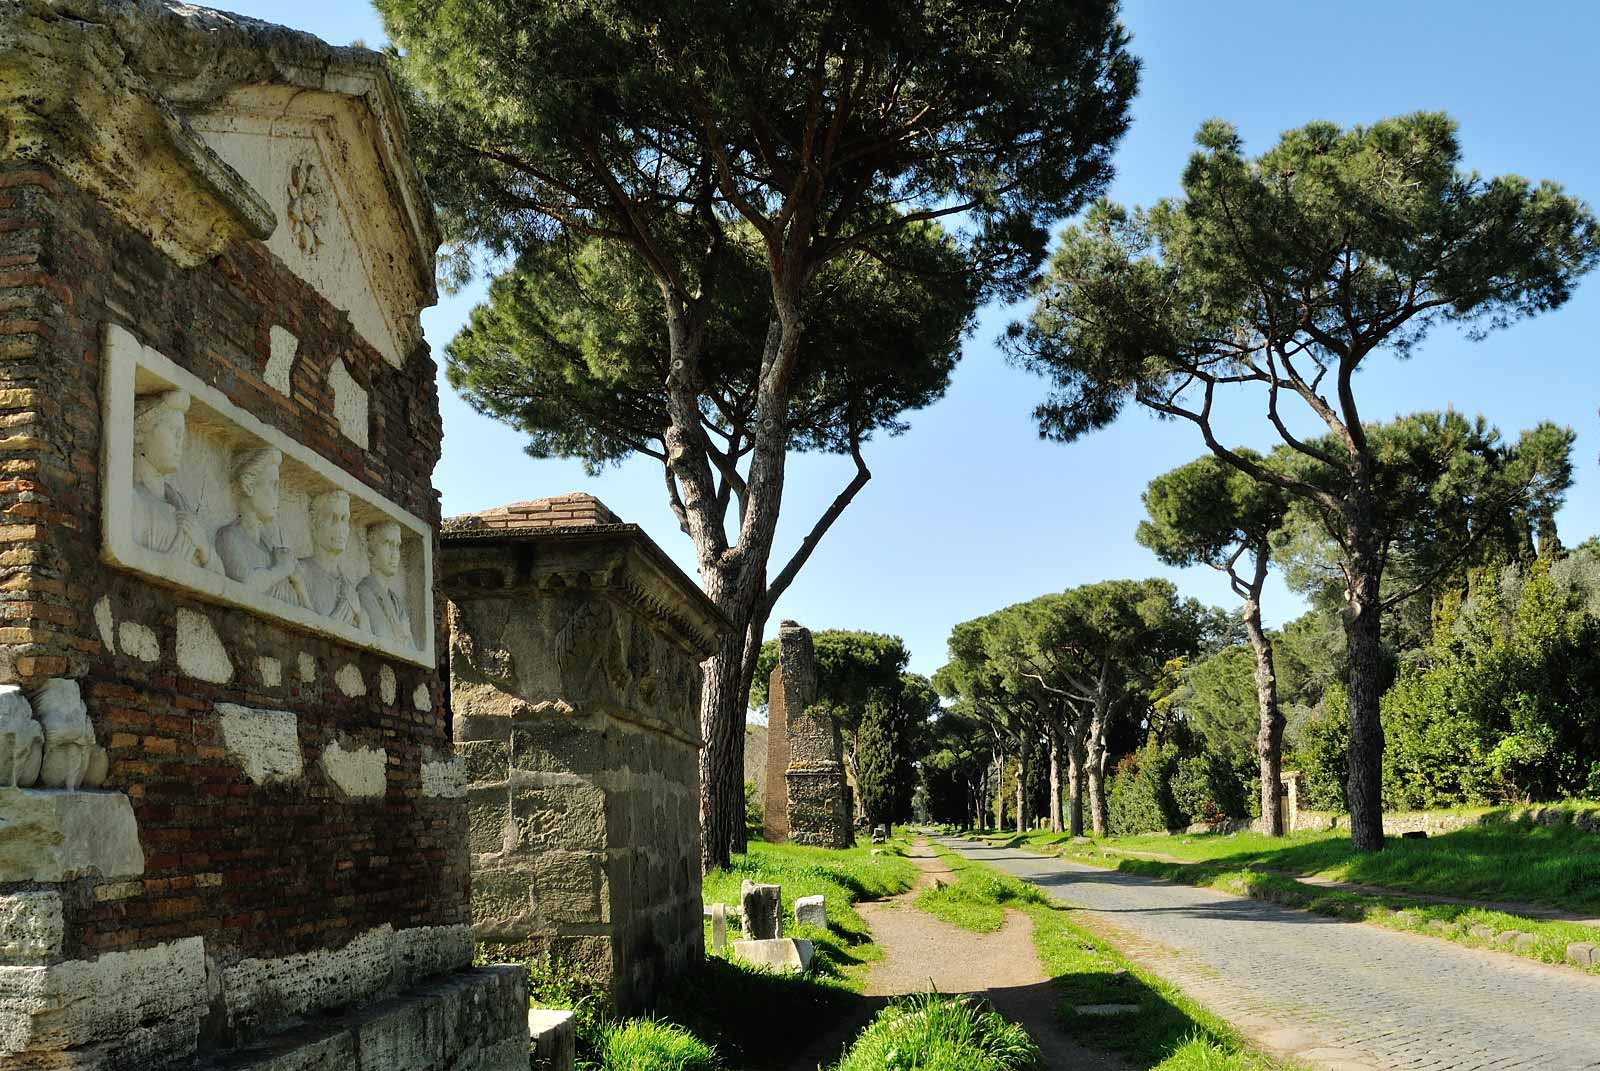 Rome Tour - Catacombs, Appian Way, and the Roman Countryside Tour